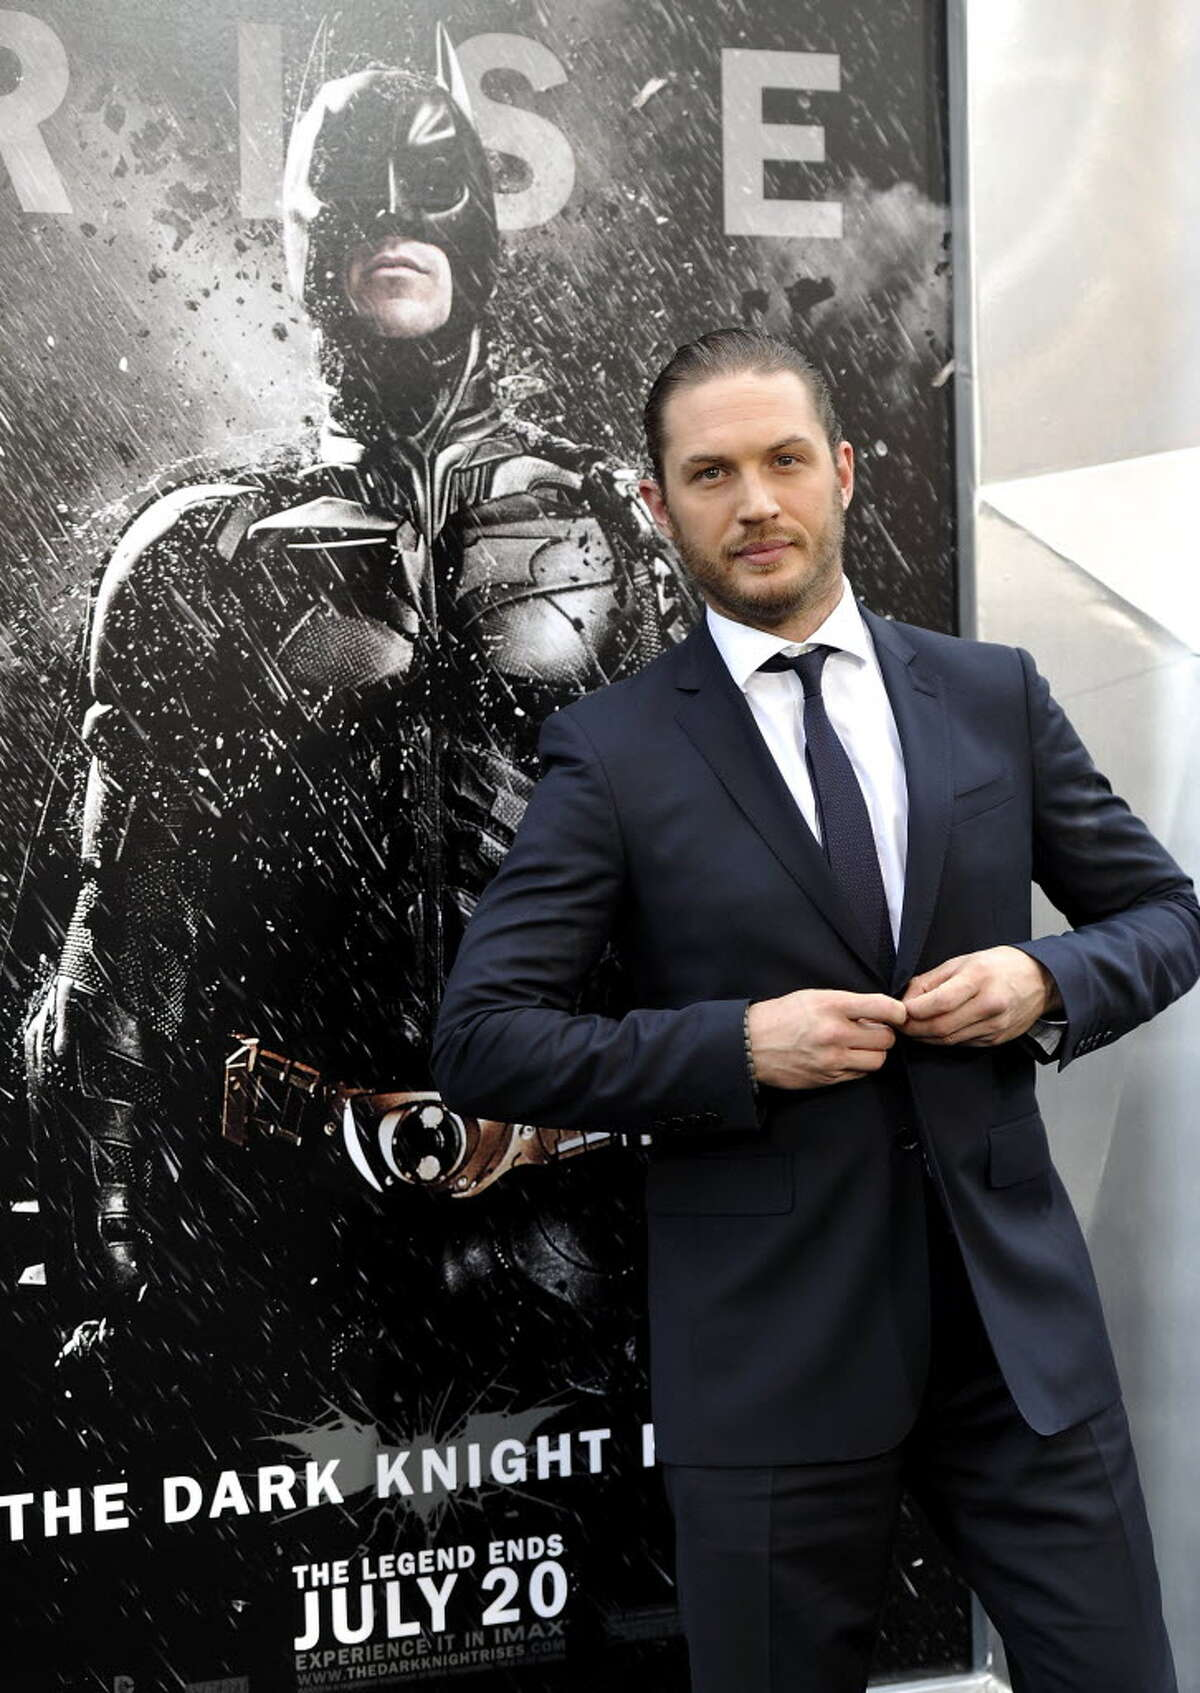 """Tom Hardy attends the world premiere of """"The Dark Knight Rises"""" at the AMC Lincoln Square Theater on Monday July 16, 2012 in New York. (Photo by Evan Agostini/Invision/AP)"""